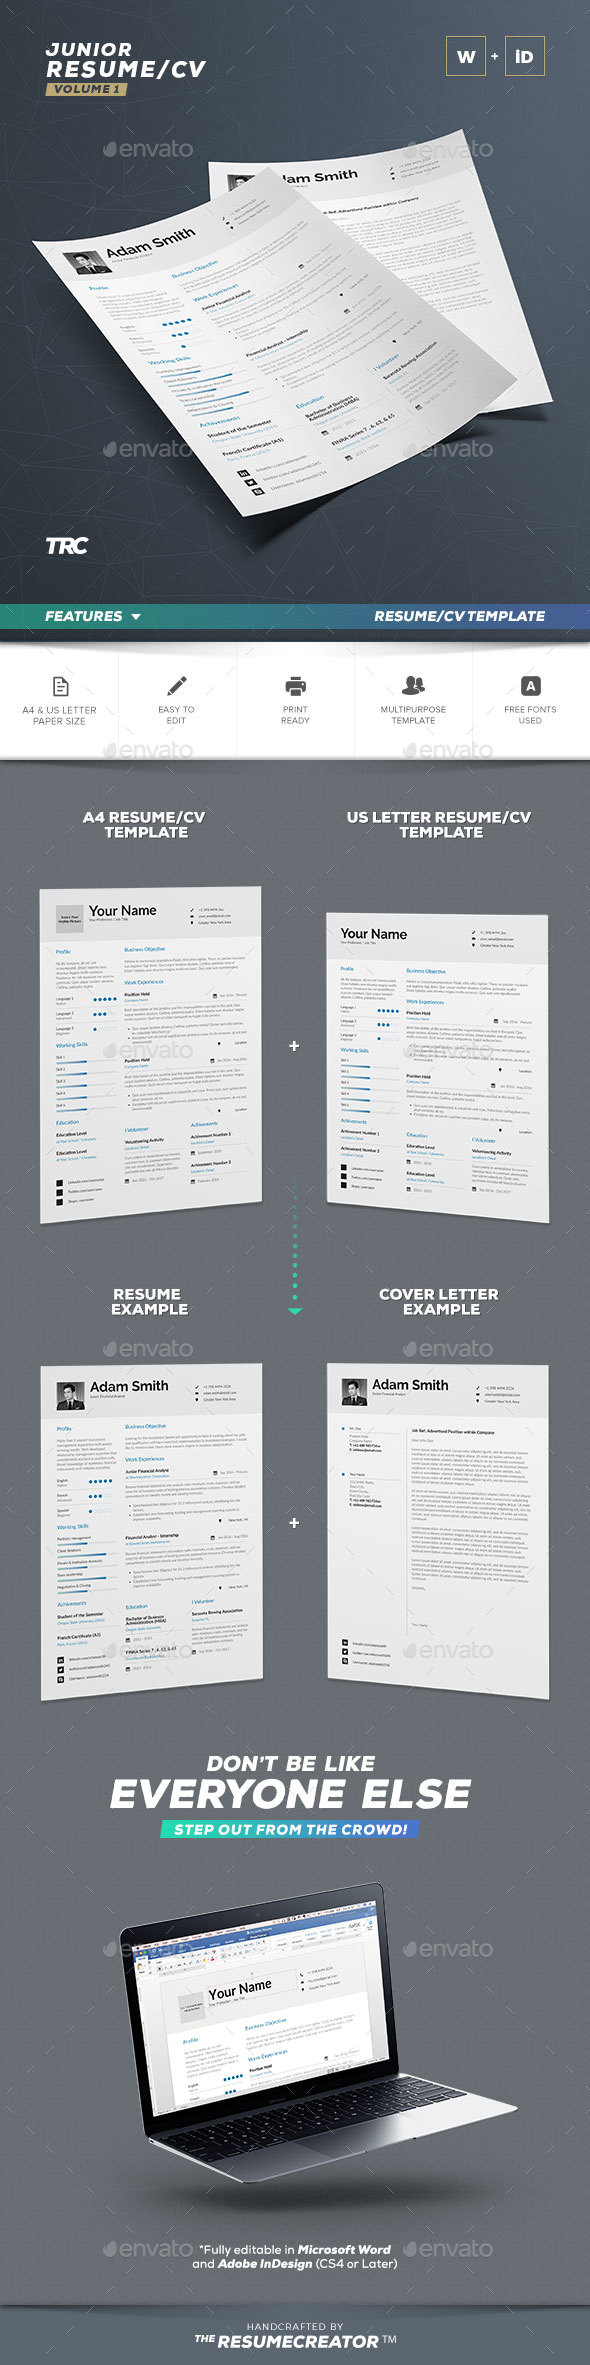 Resume / Cv Template - Word And Indesign - Resumes Stationery